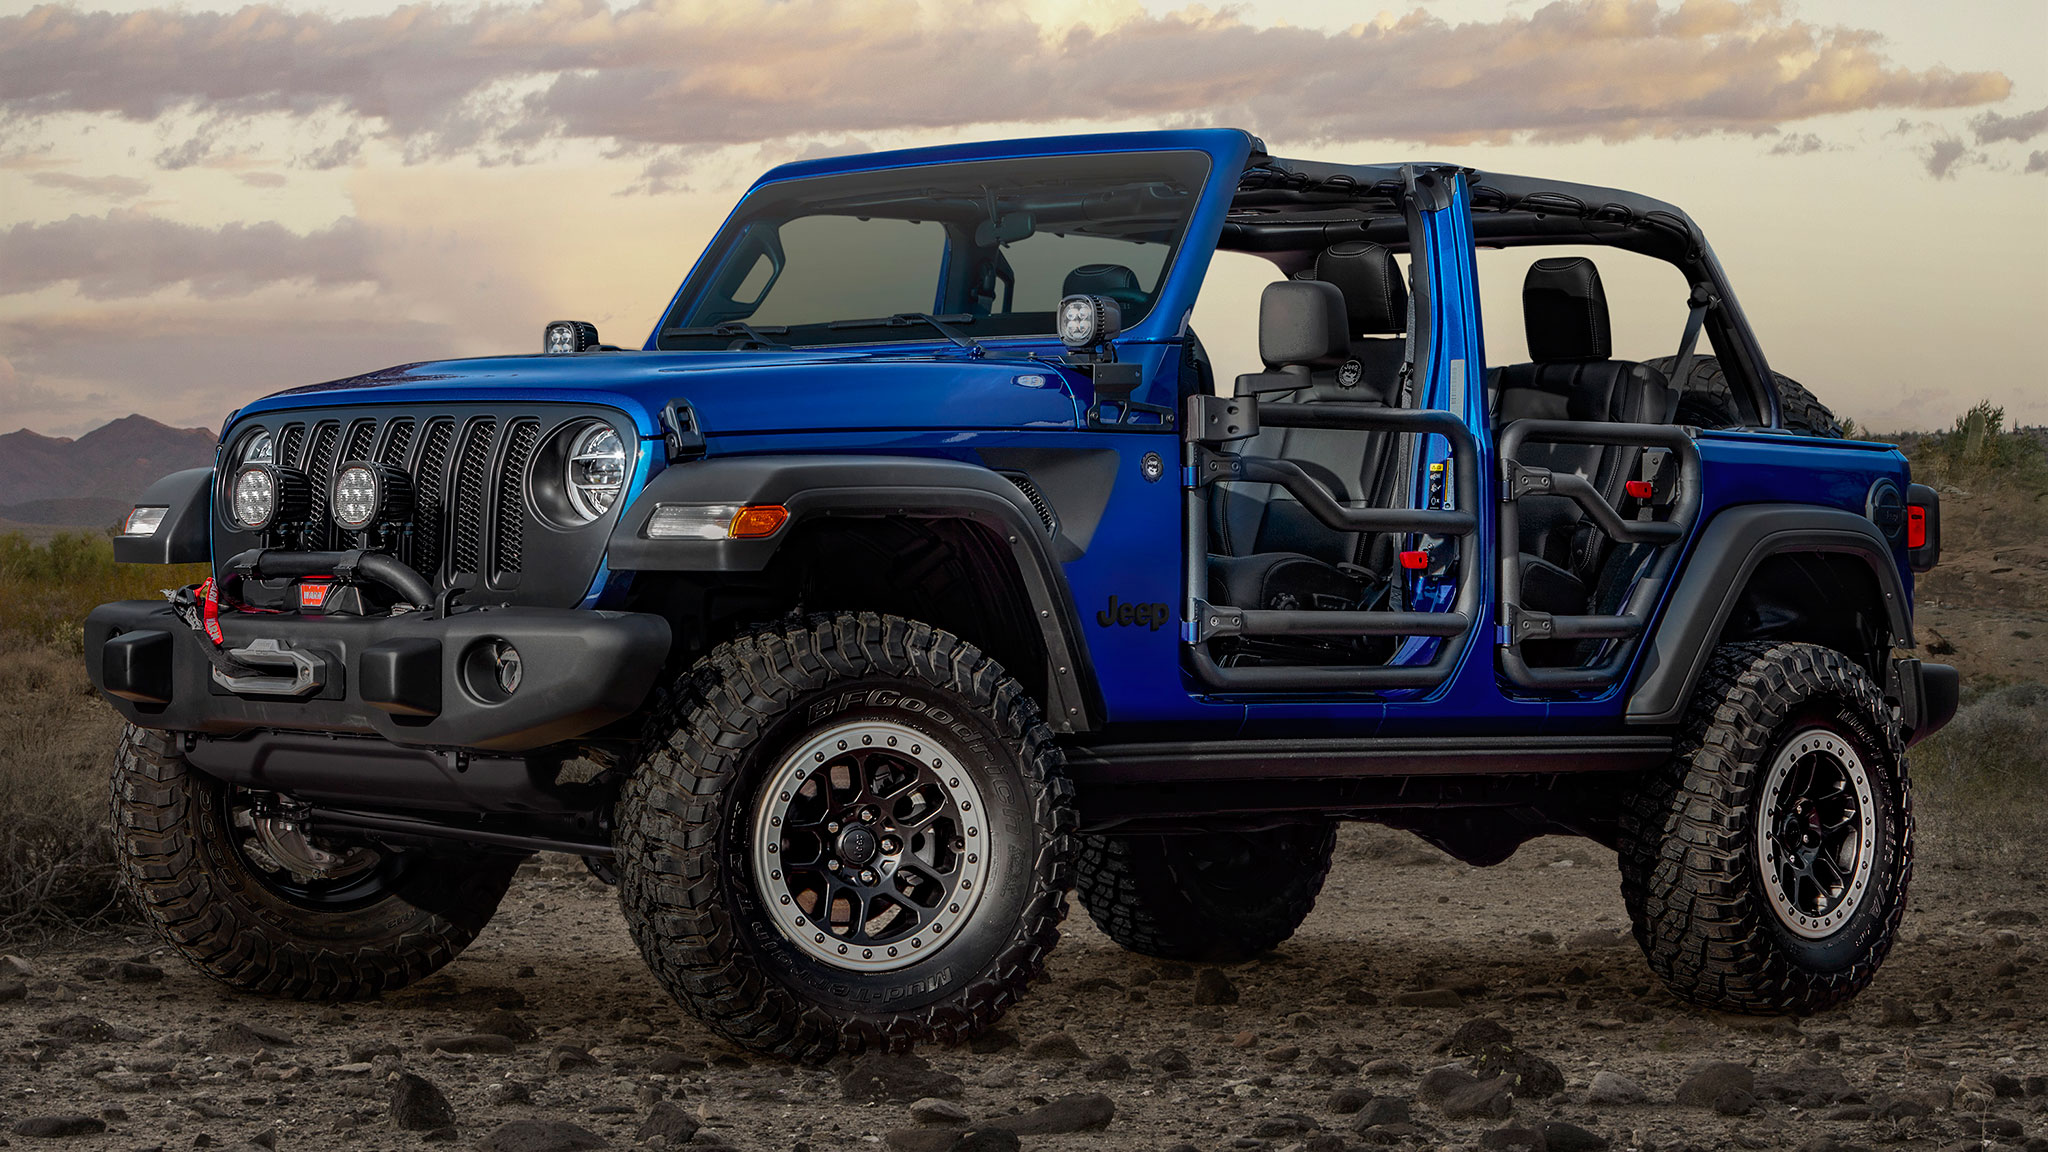 2020 Jeep Wrangler JPP 20: A Factory-Modified Special Packed with Mopar  Parts